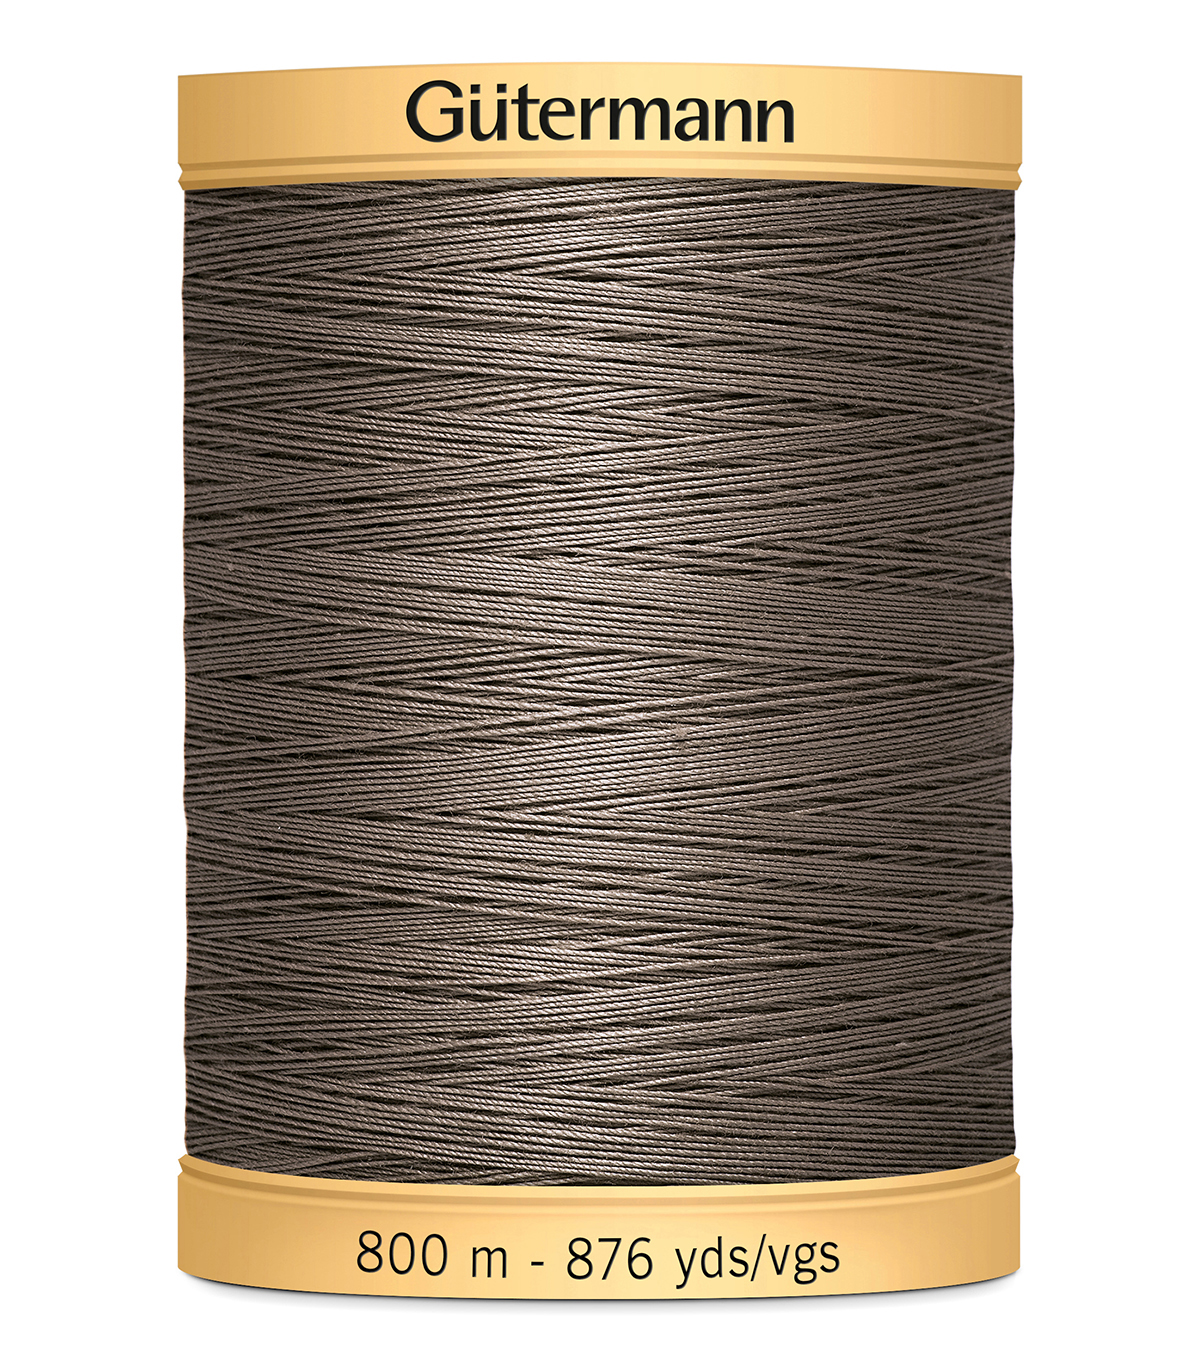 Gutermann Natural Cotton Thread Solids 876 yd, Taupe